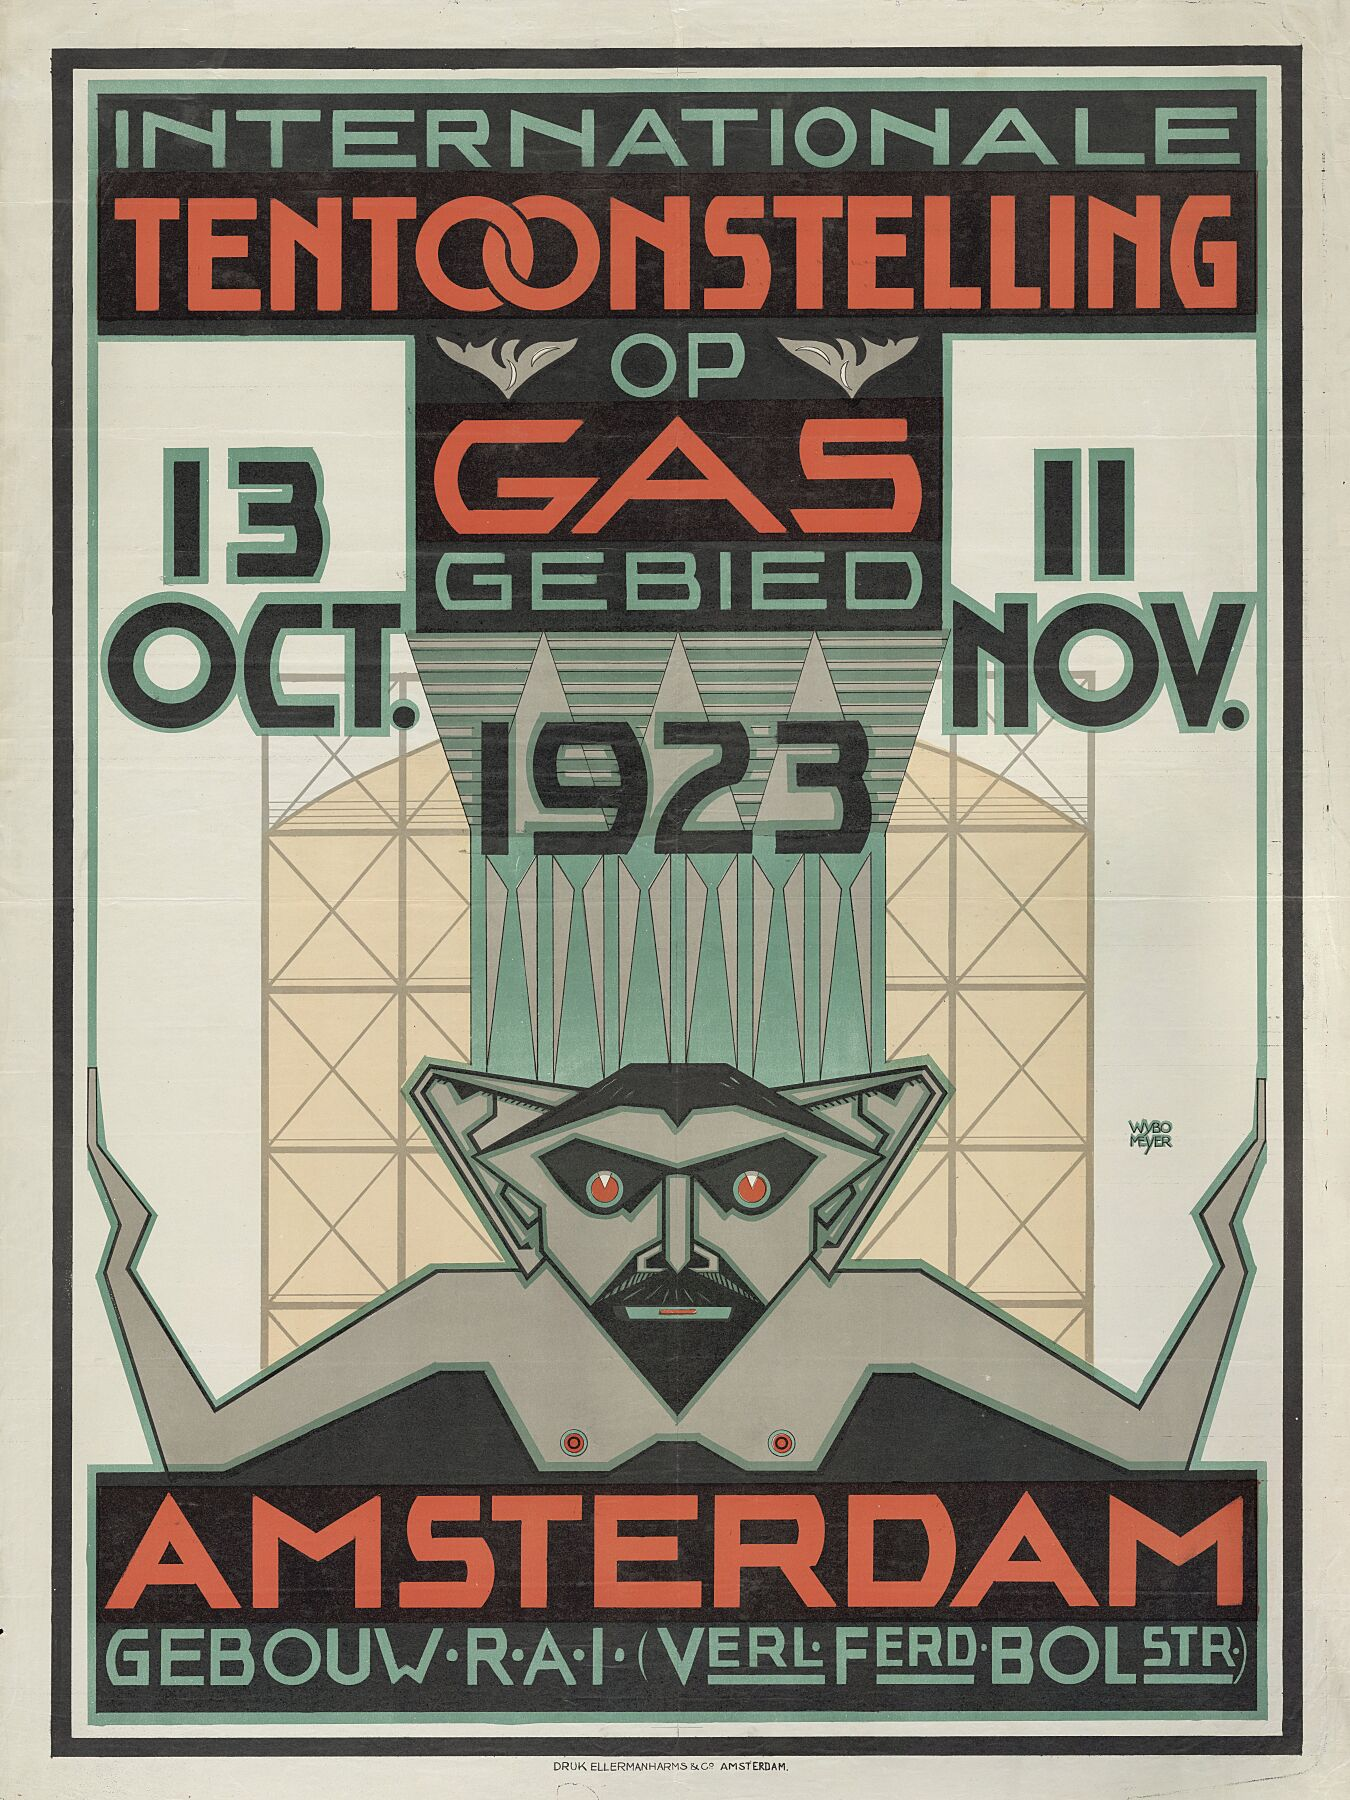 Poster for the International Gas Exhibition in 1923 by Wybo Meijer